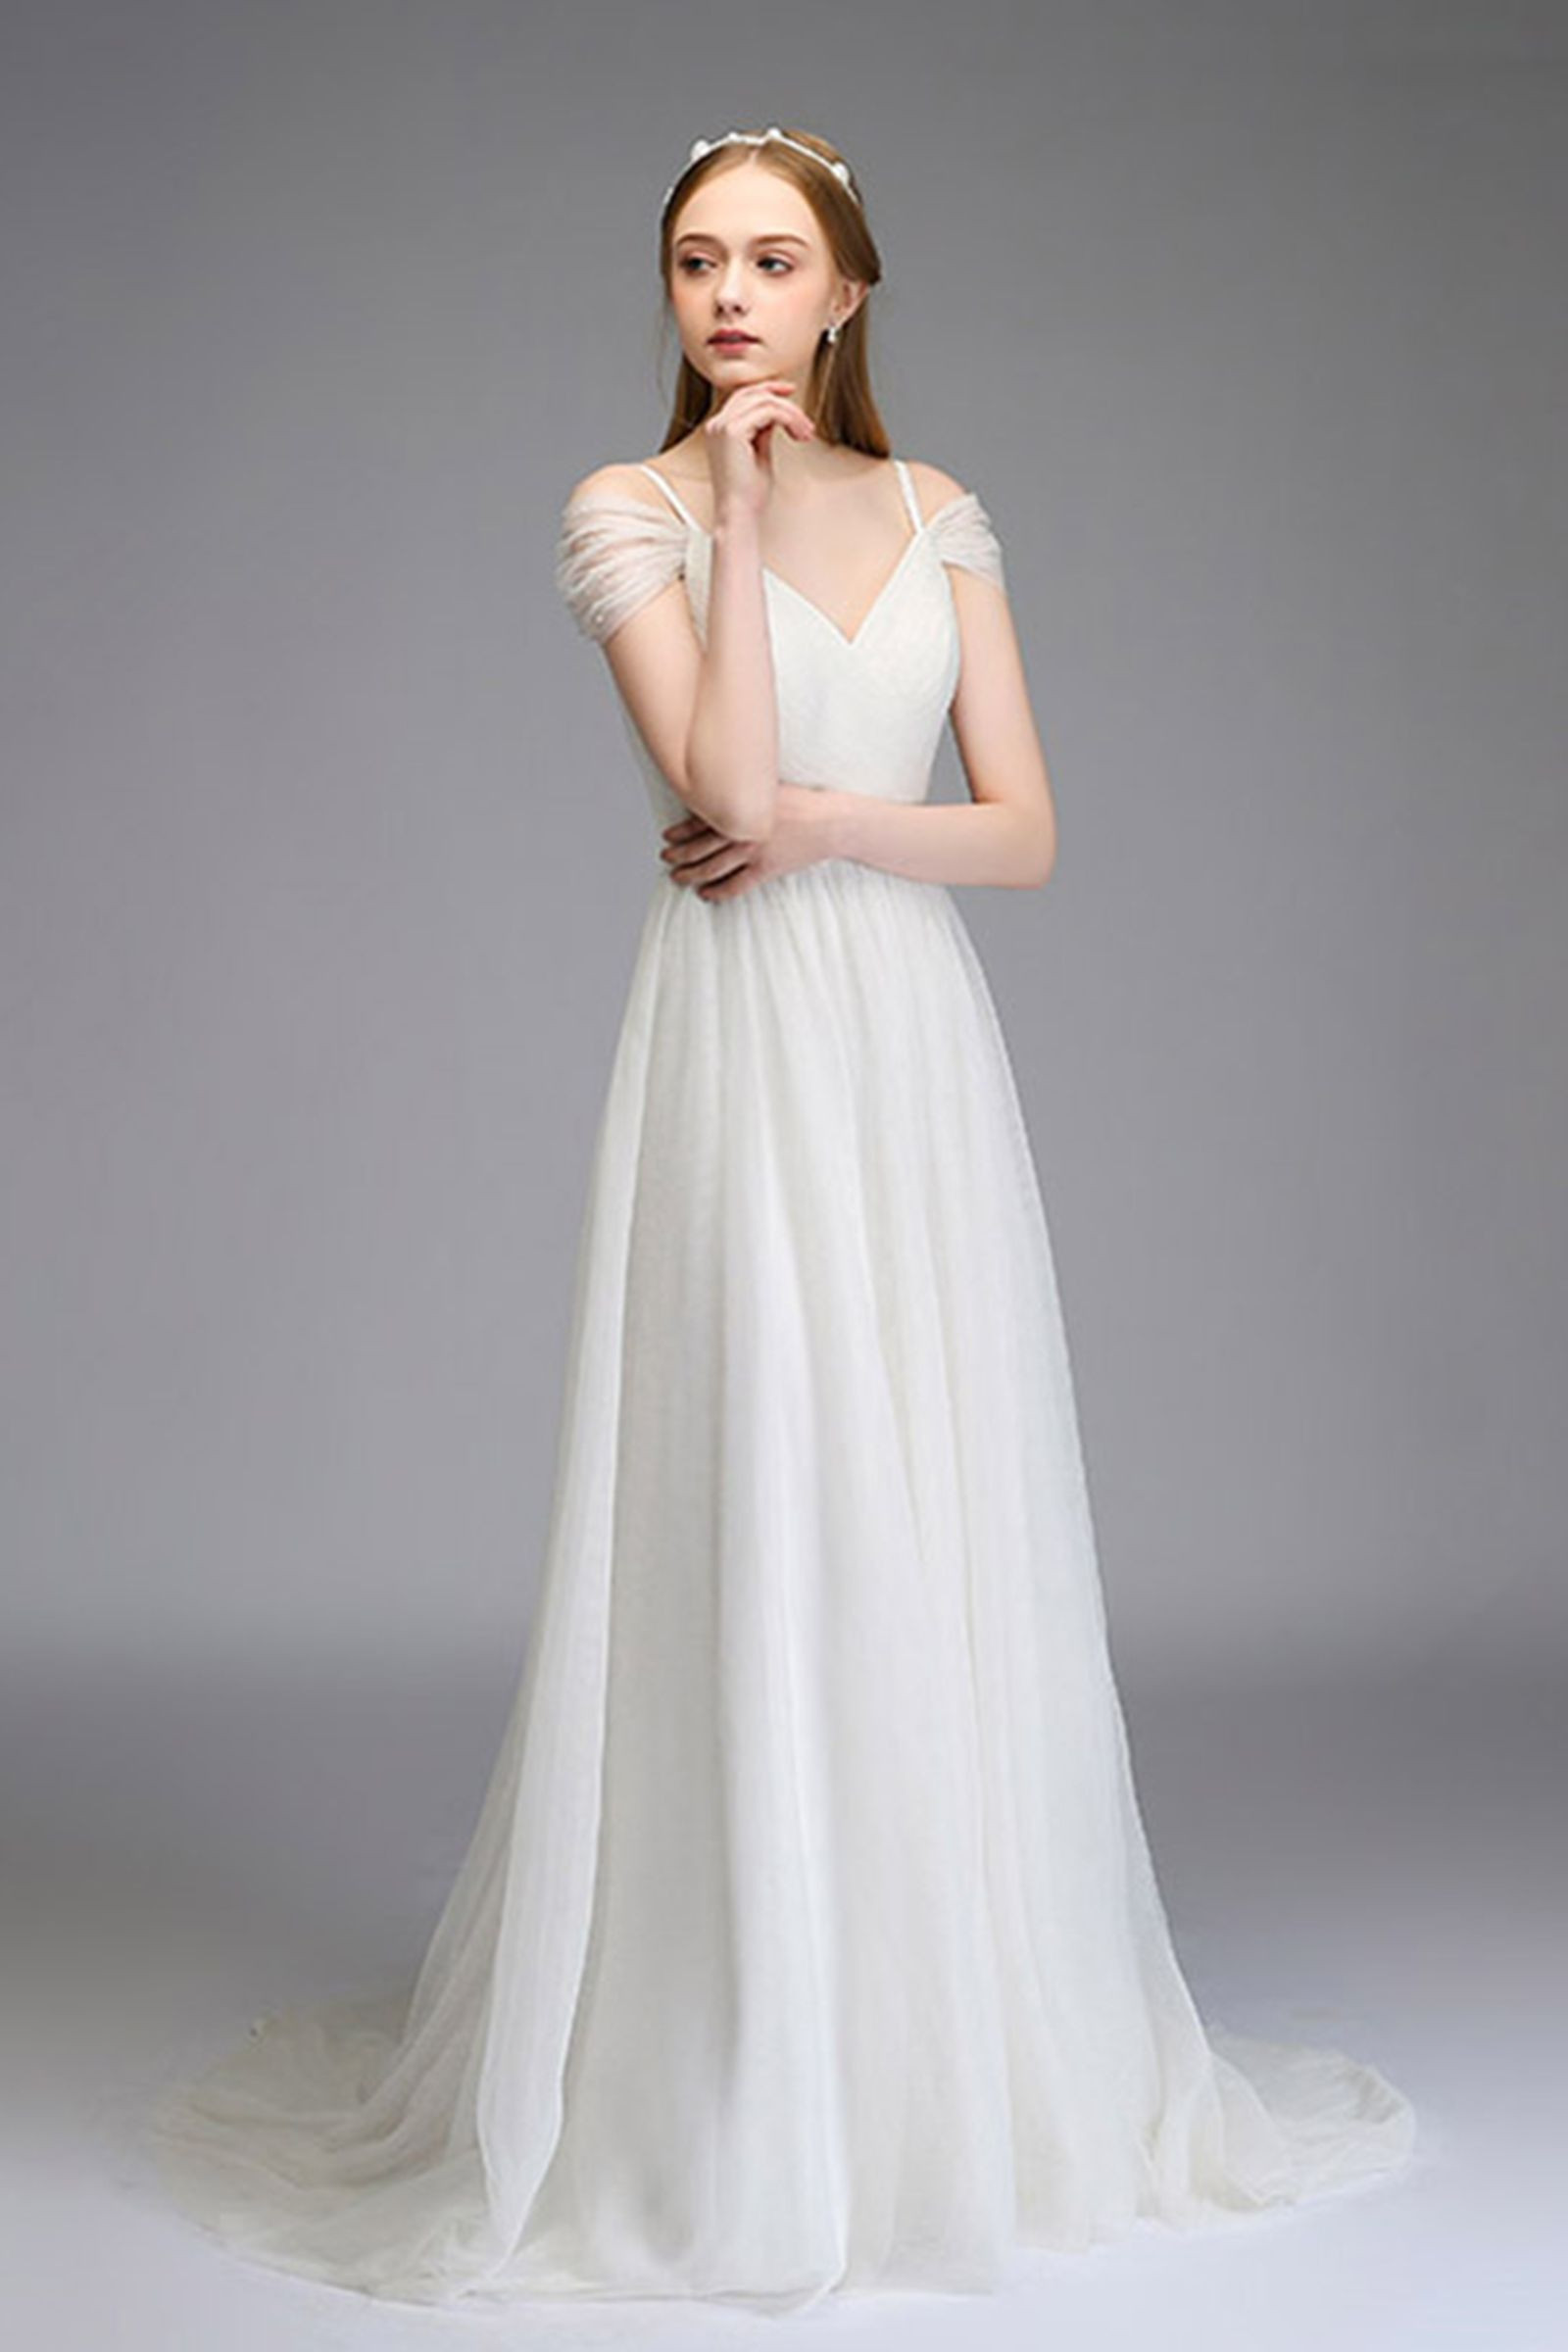 White Cross Sleeves Wedding Dress